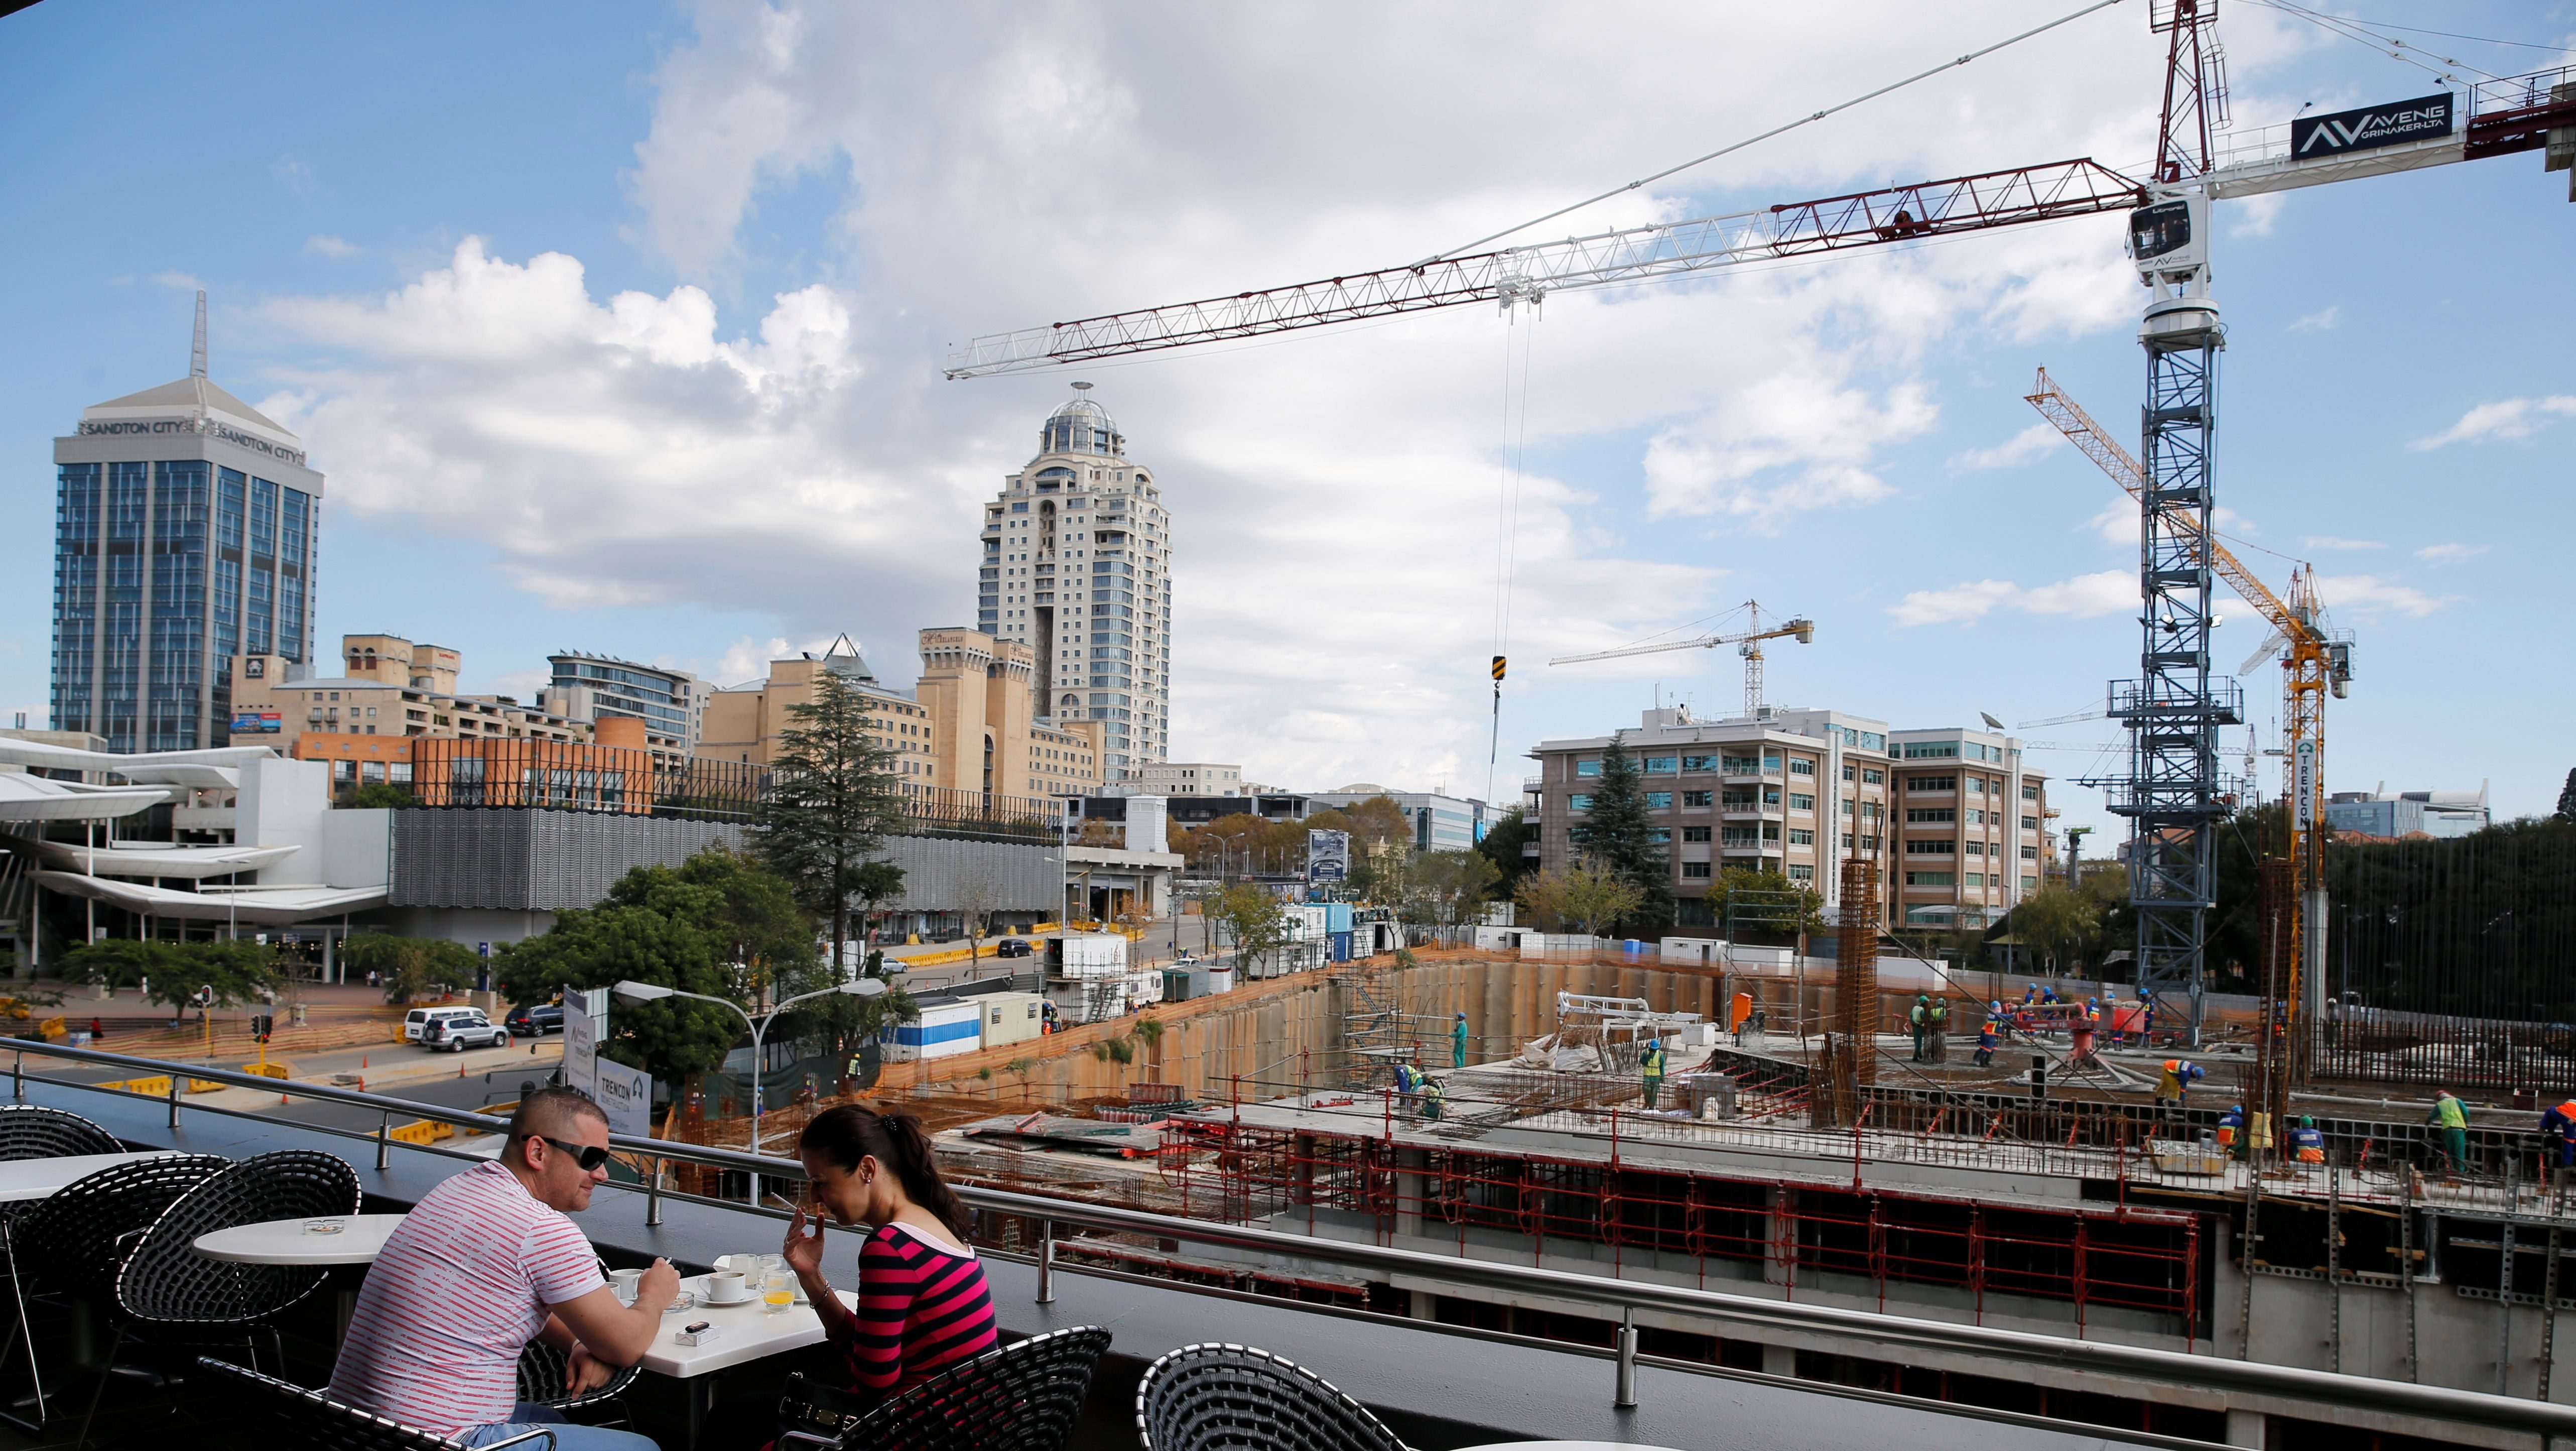 A couple is seen at a hotel balcony as construction takes place below the skyline of Johannesburg's upmarket Sandton suburb,April 23,2016.